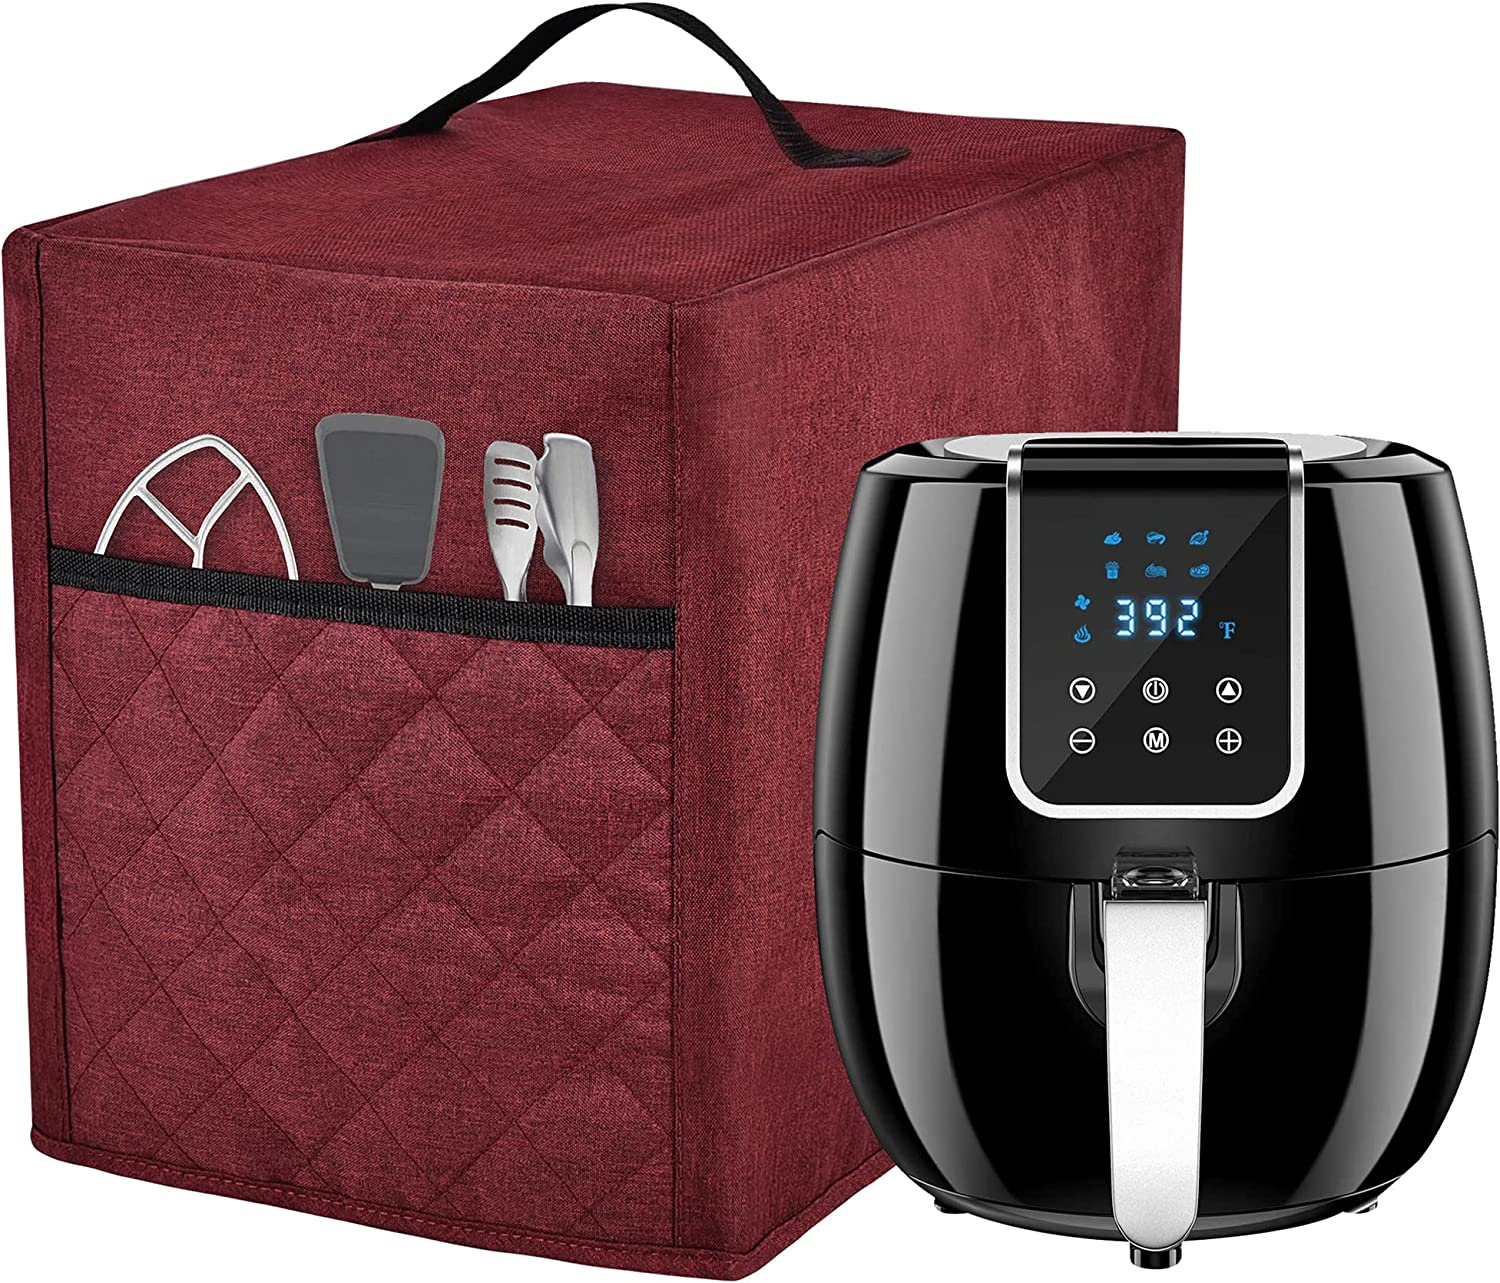 Air Fryer Dust Online limited product Cover with 3 Pocket Accessory burgundy Max 60% OFF FIT FOR